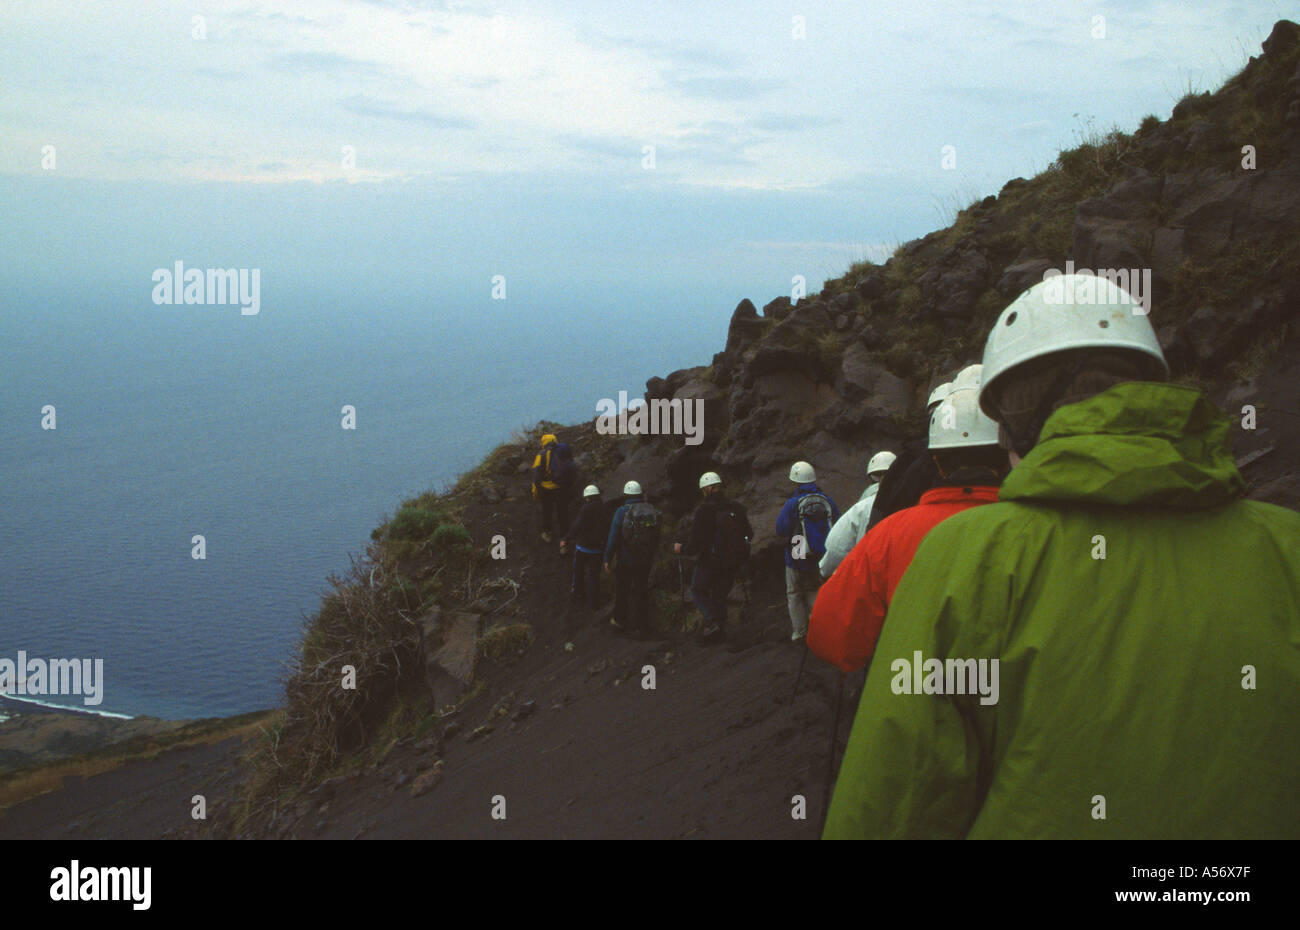 Walkers with volcanologist guide climbing Stromboli Volcano on island of Stromboli Sicily - Stock Image